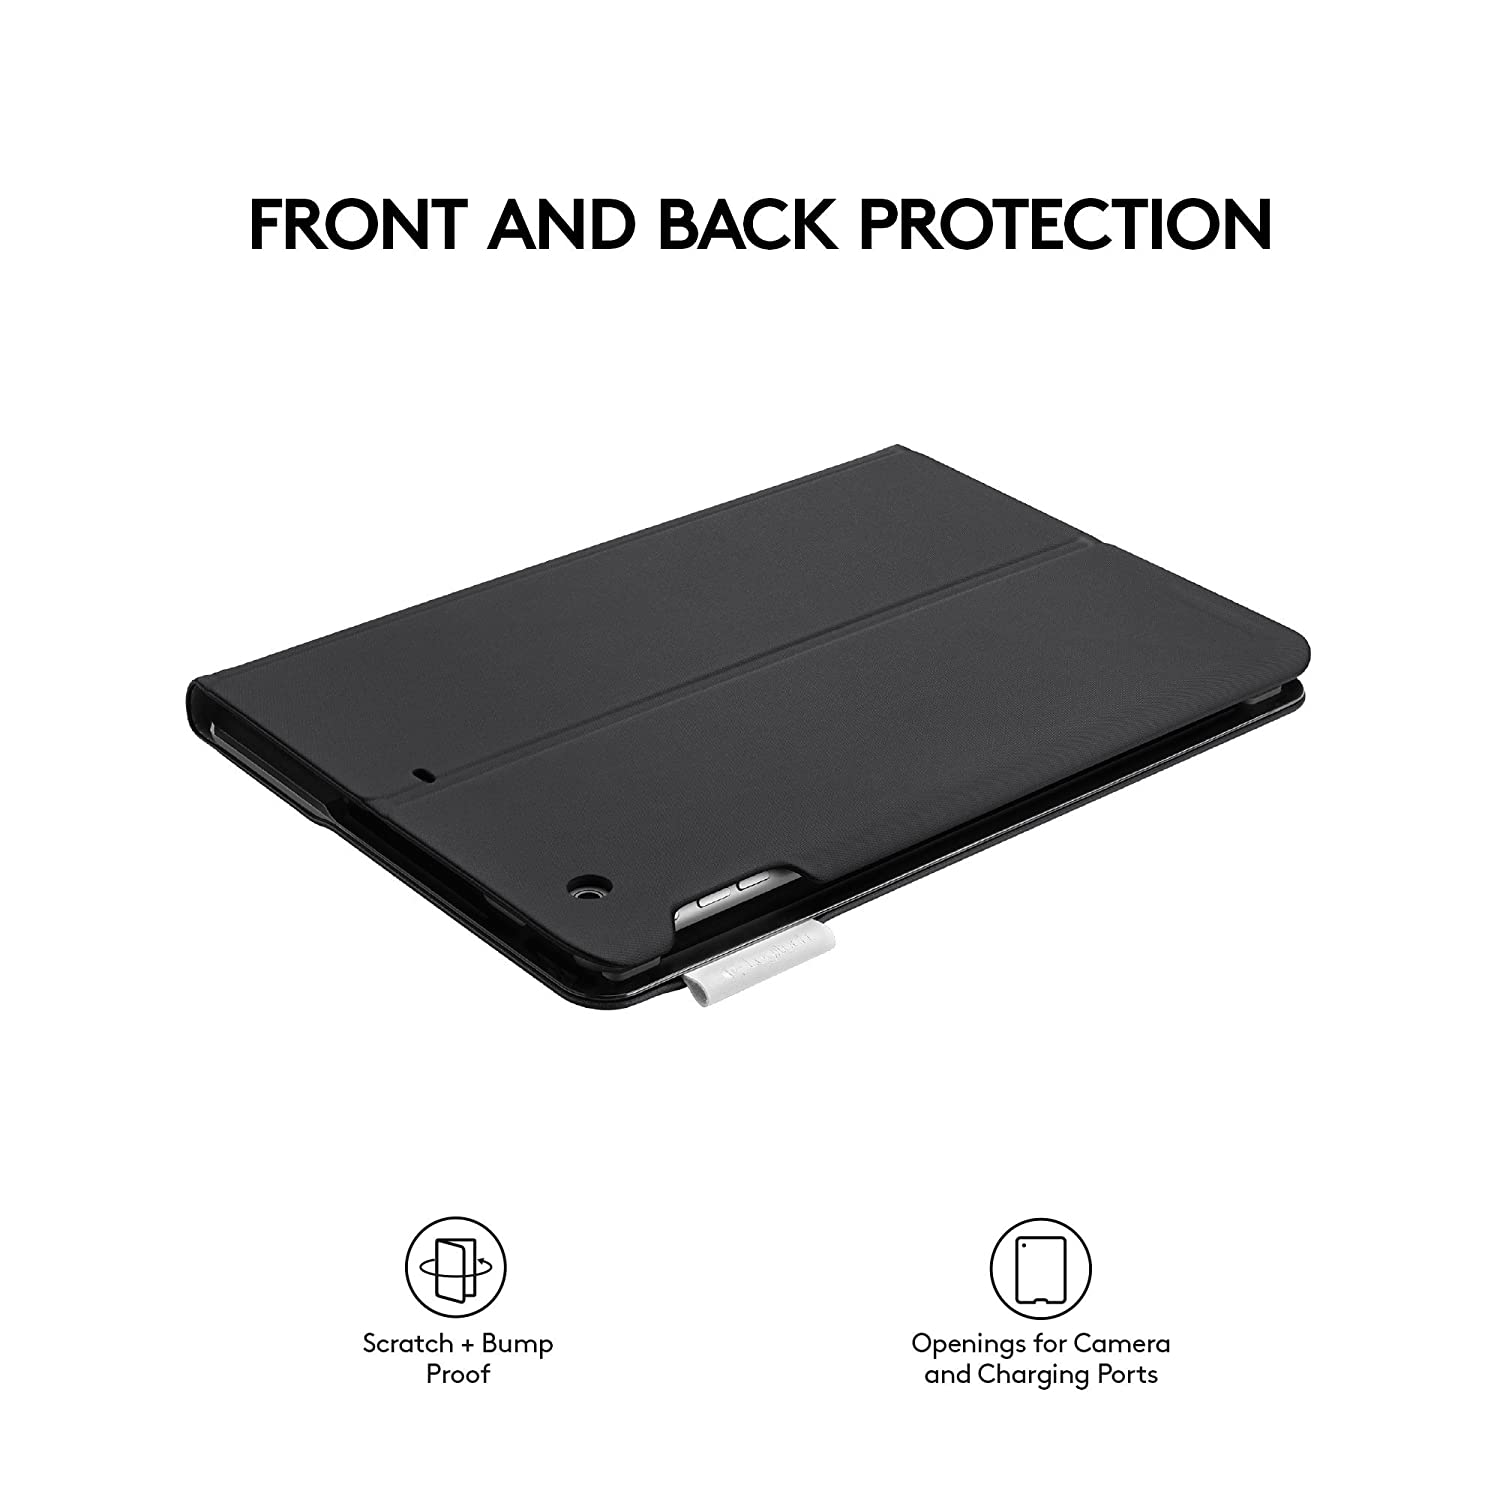 Smooth Surface 920-006912 Logitech Type+ Protective Case with Integrated Keyboard for iPad Air 2 ONLY! - Black